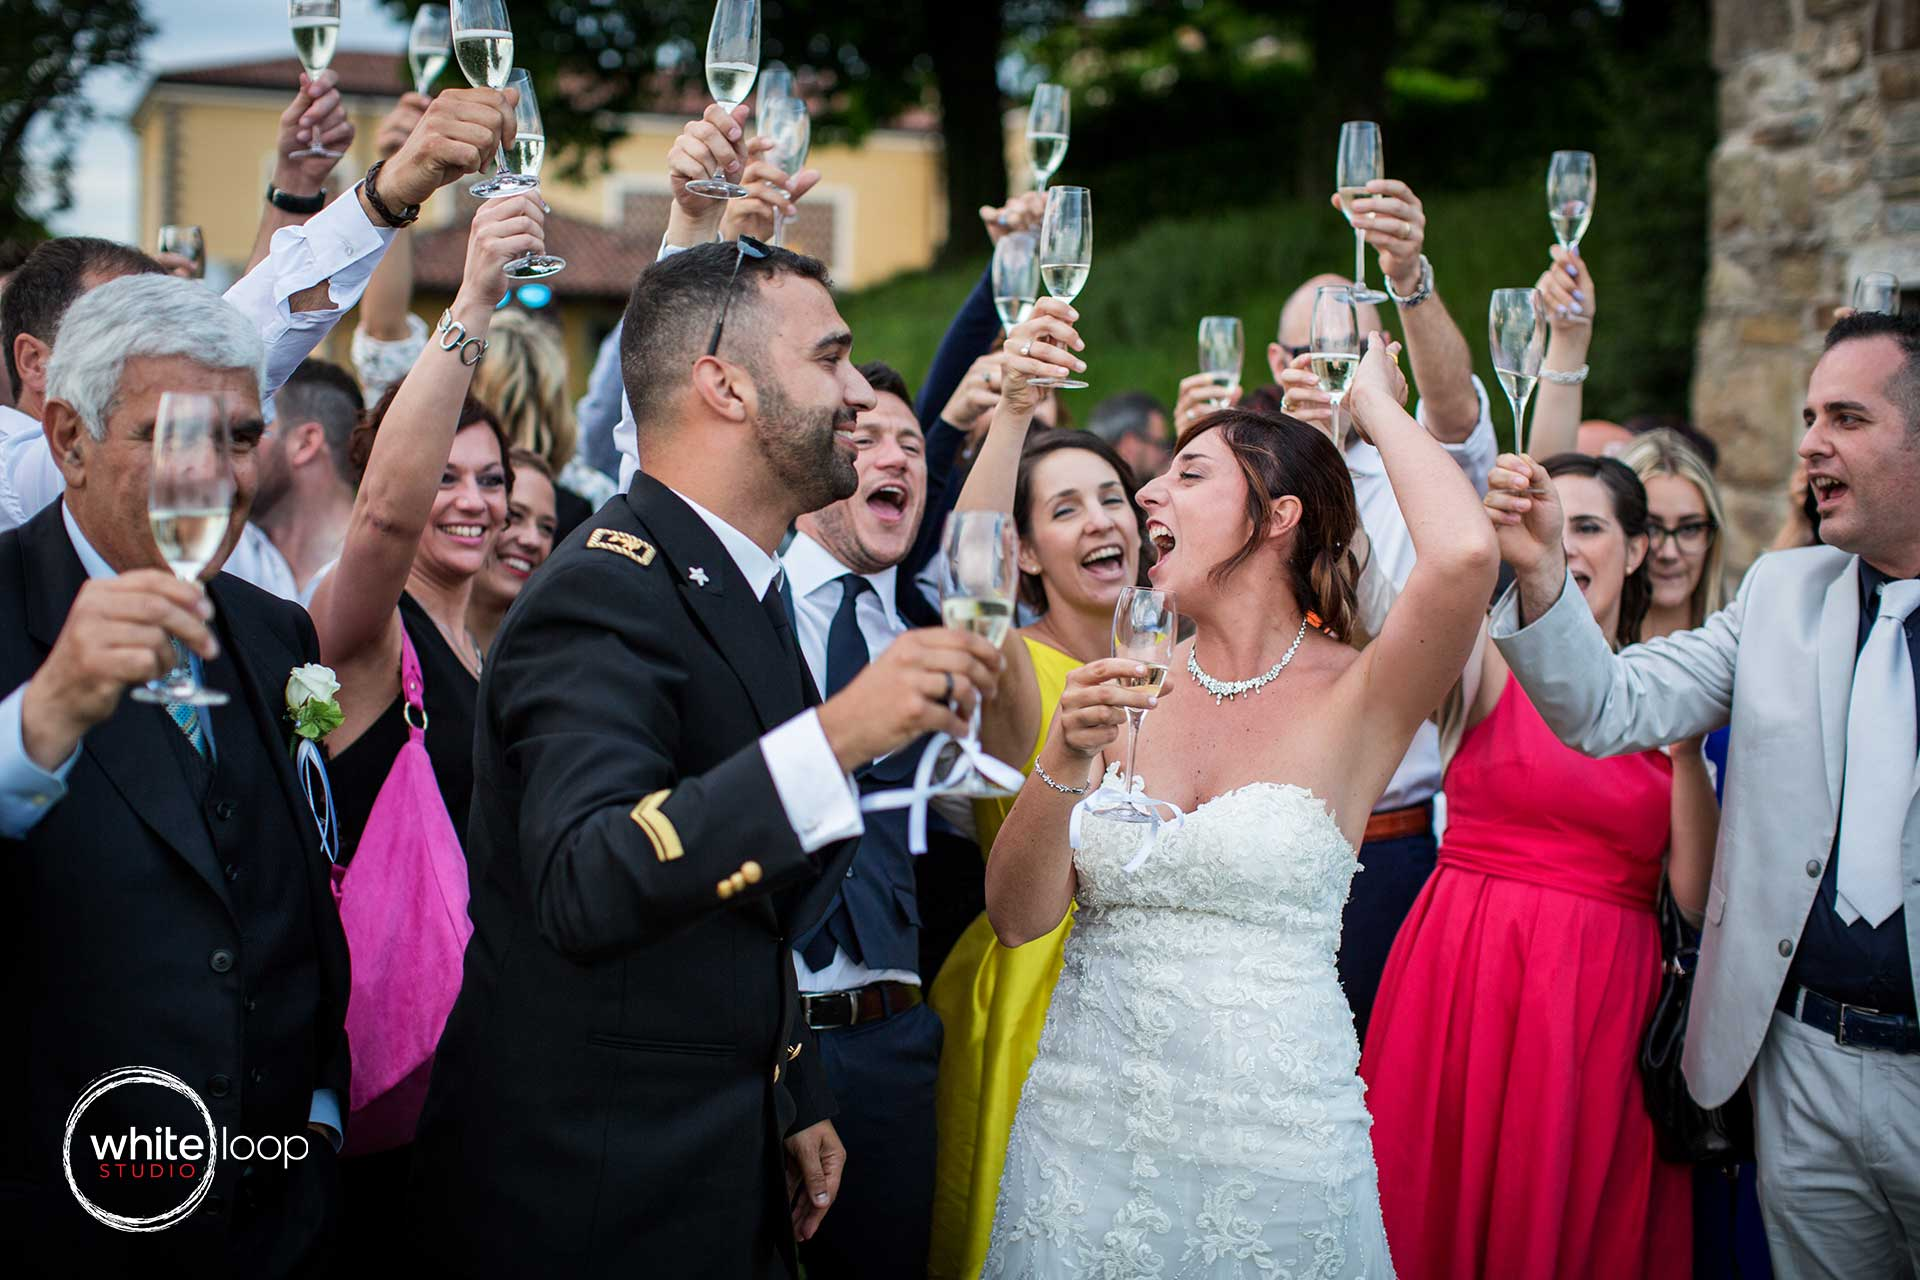 Everybody, the bride, groom and the guests are doing a big toast for the wedding.